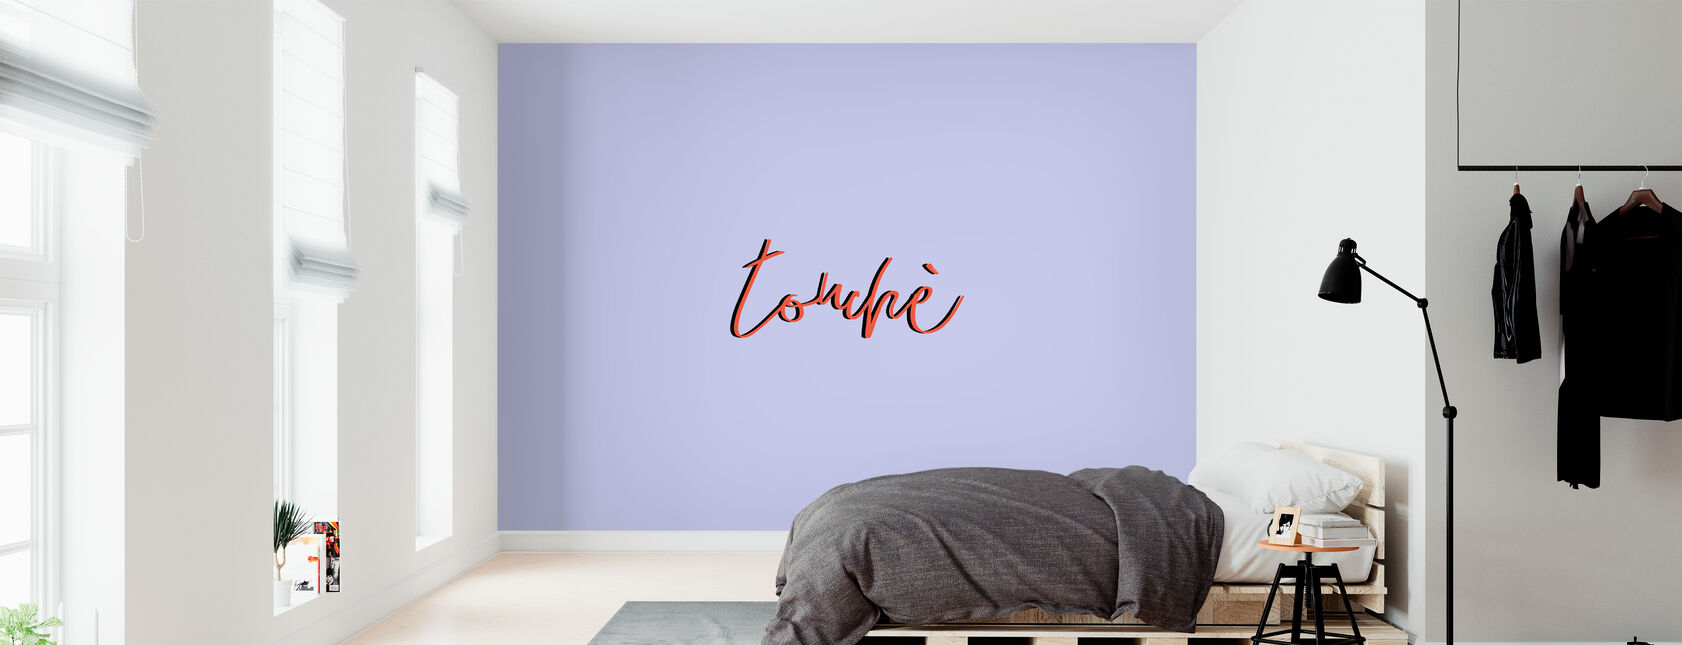 Touche - Wallpaper - Bedroom